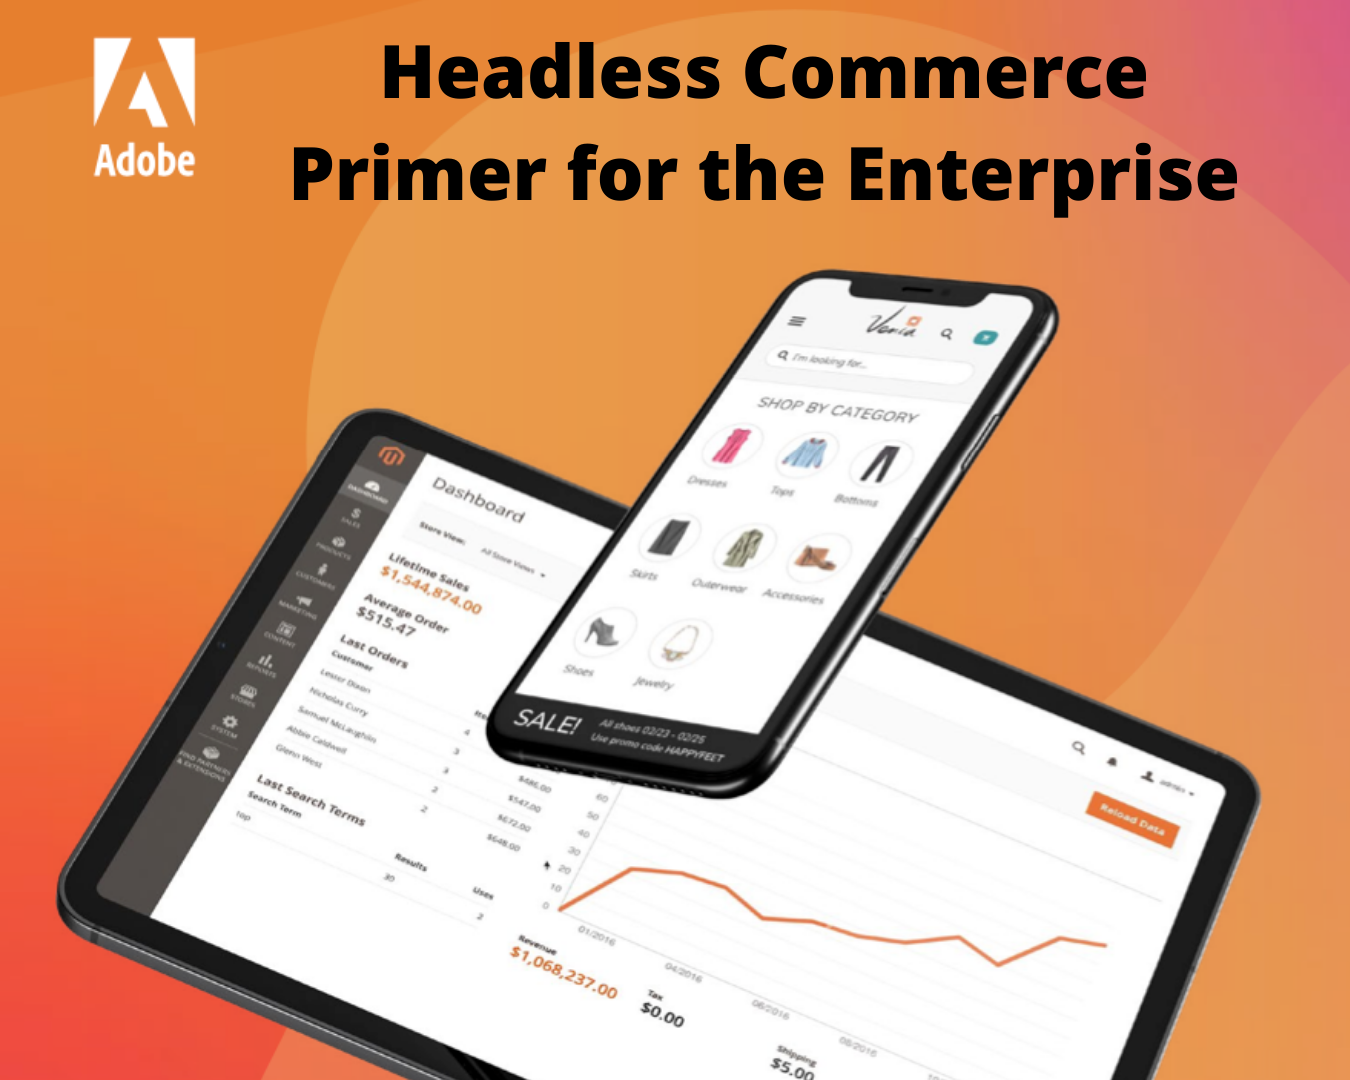 Headless Commerce Primer for the Enterprise